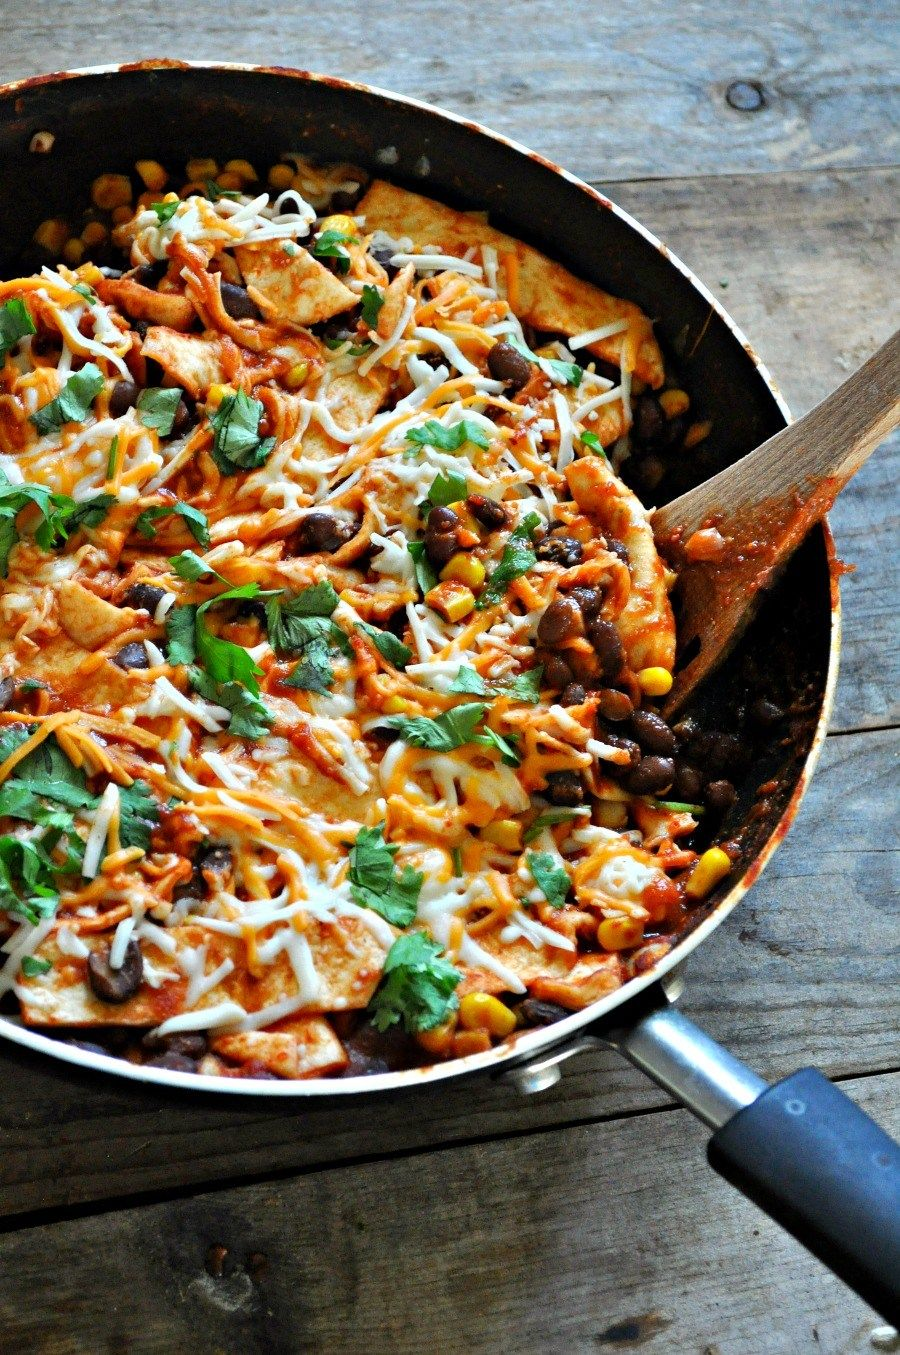 Vegan Red Chili Burrito Skillet